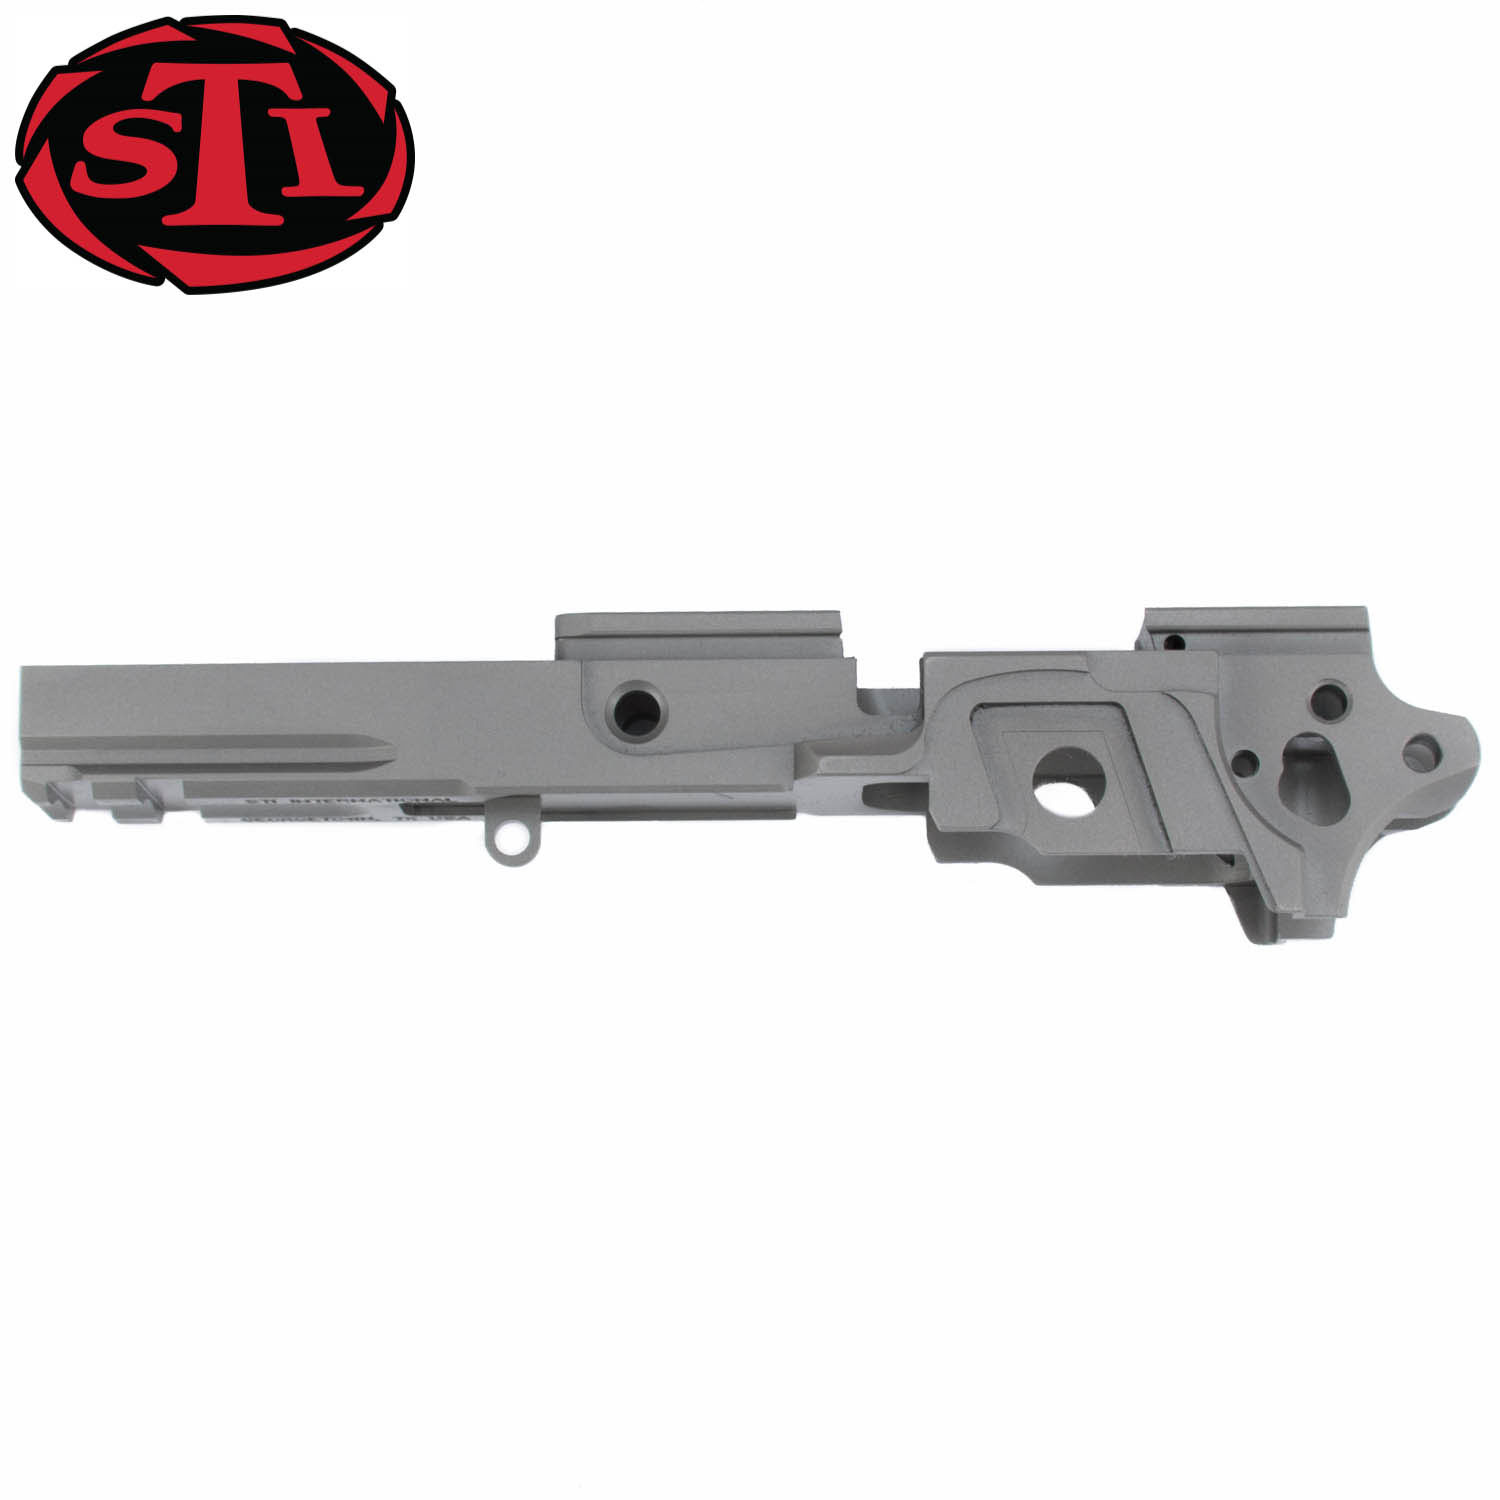 STI 2011 Frame, Carbon Steel Standard Ramped, Tactical Dust Cover ...